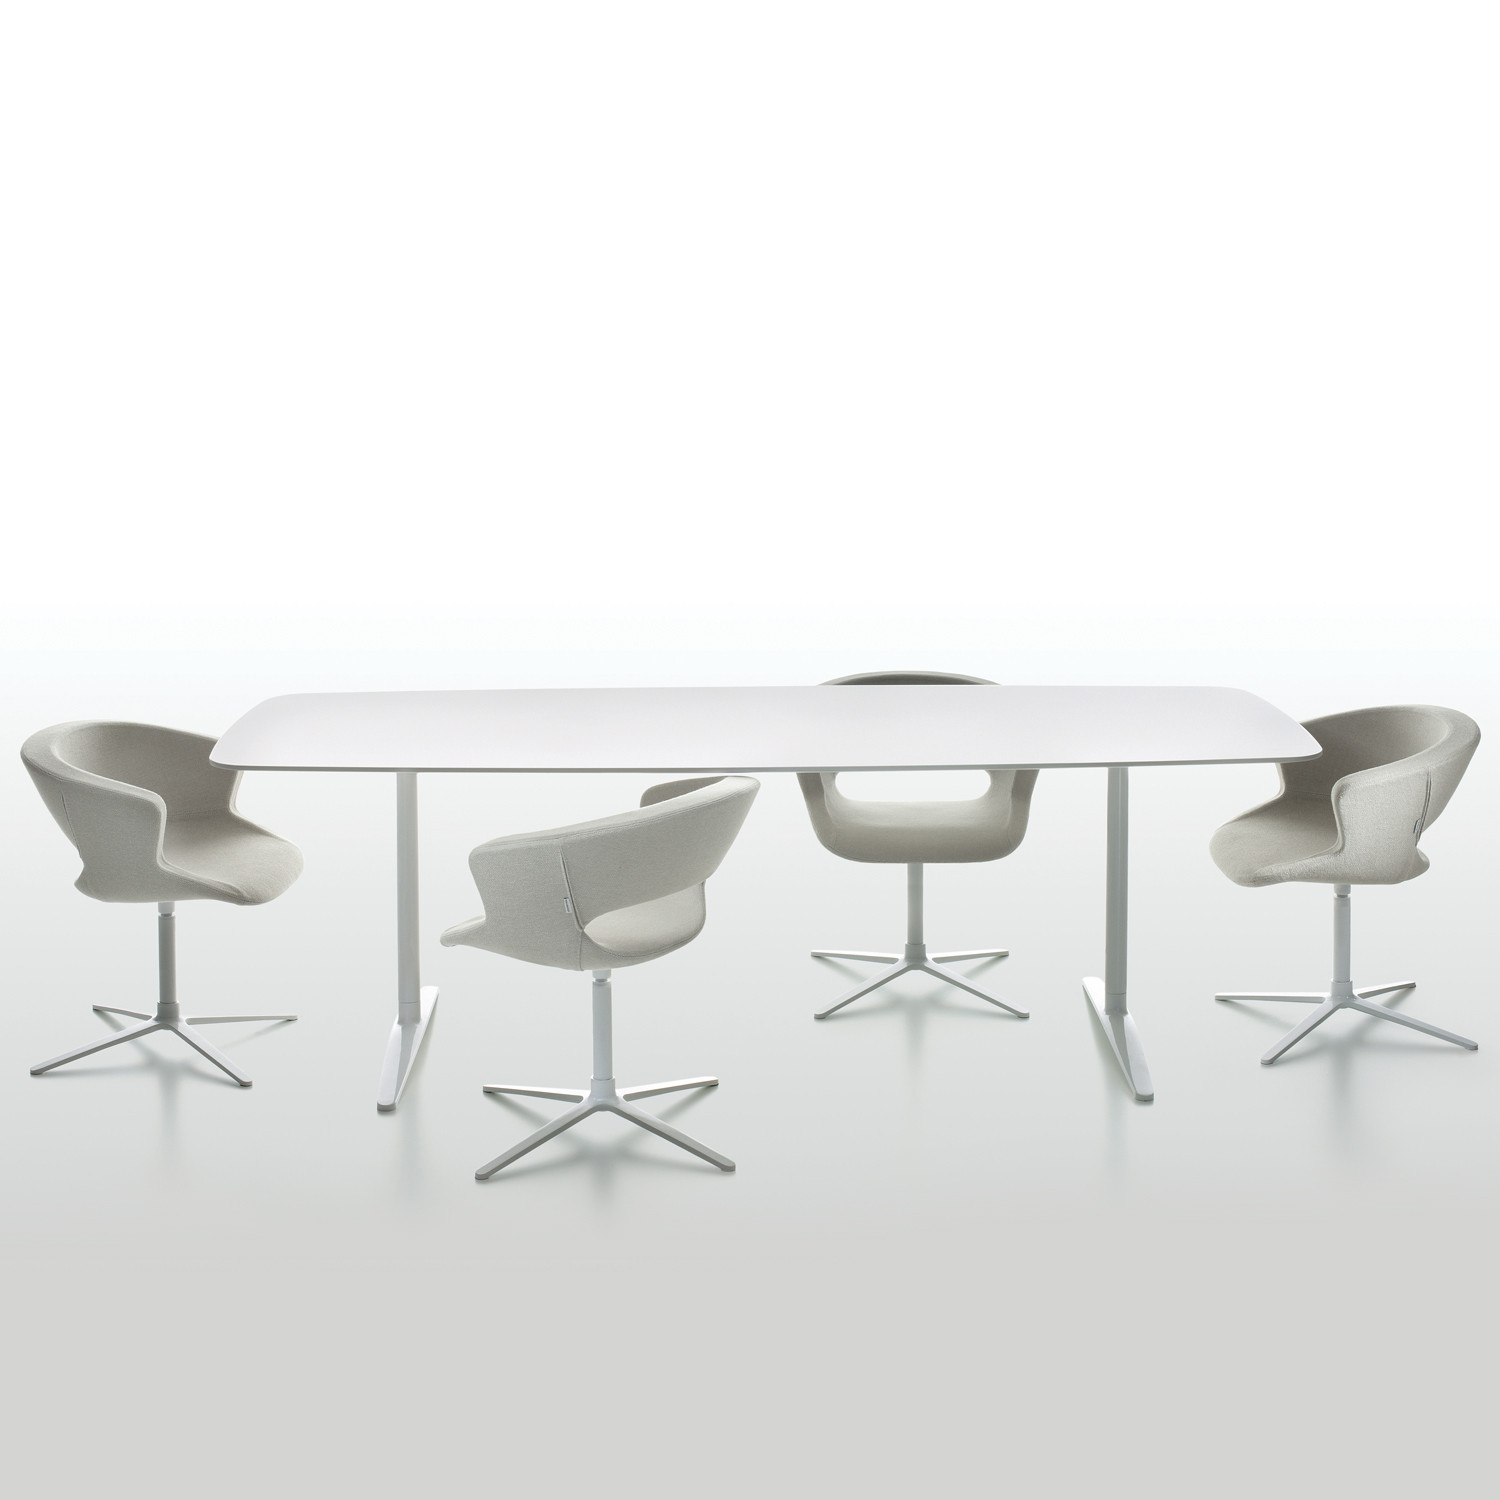 Maxdesign Plato Meeting Table